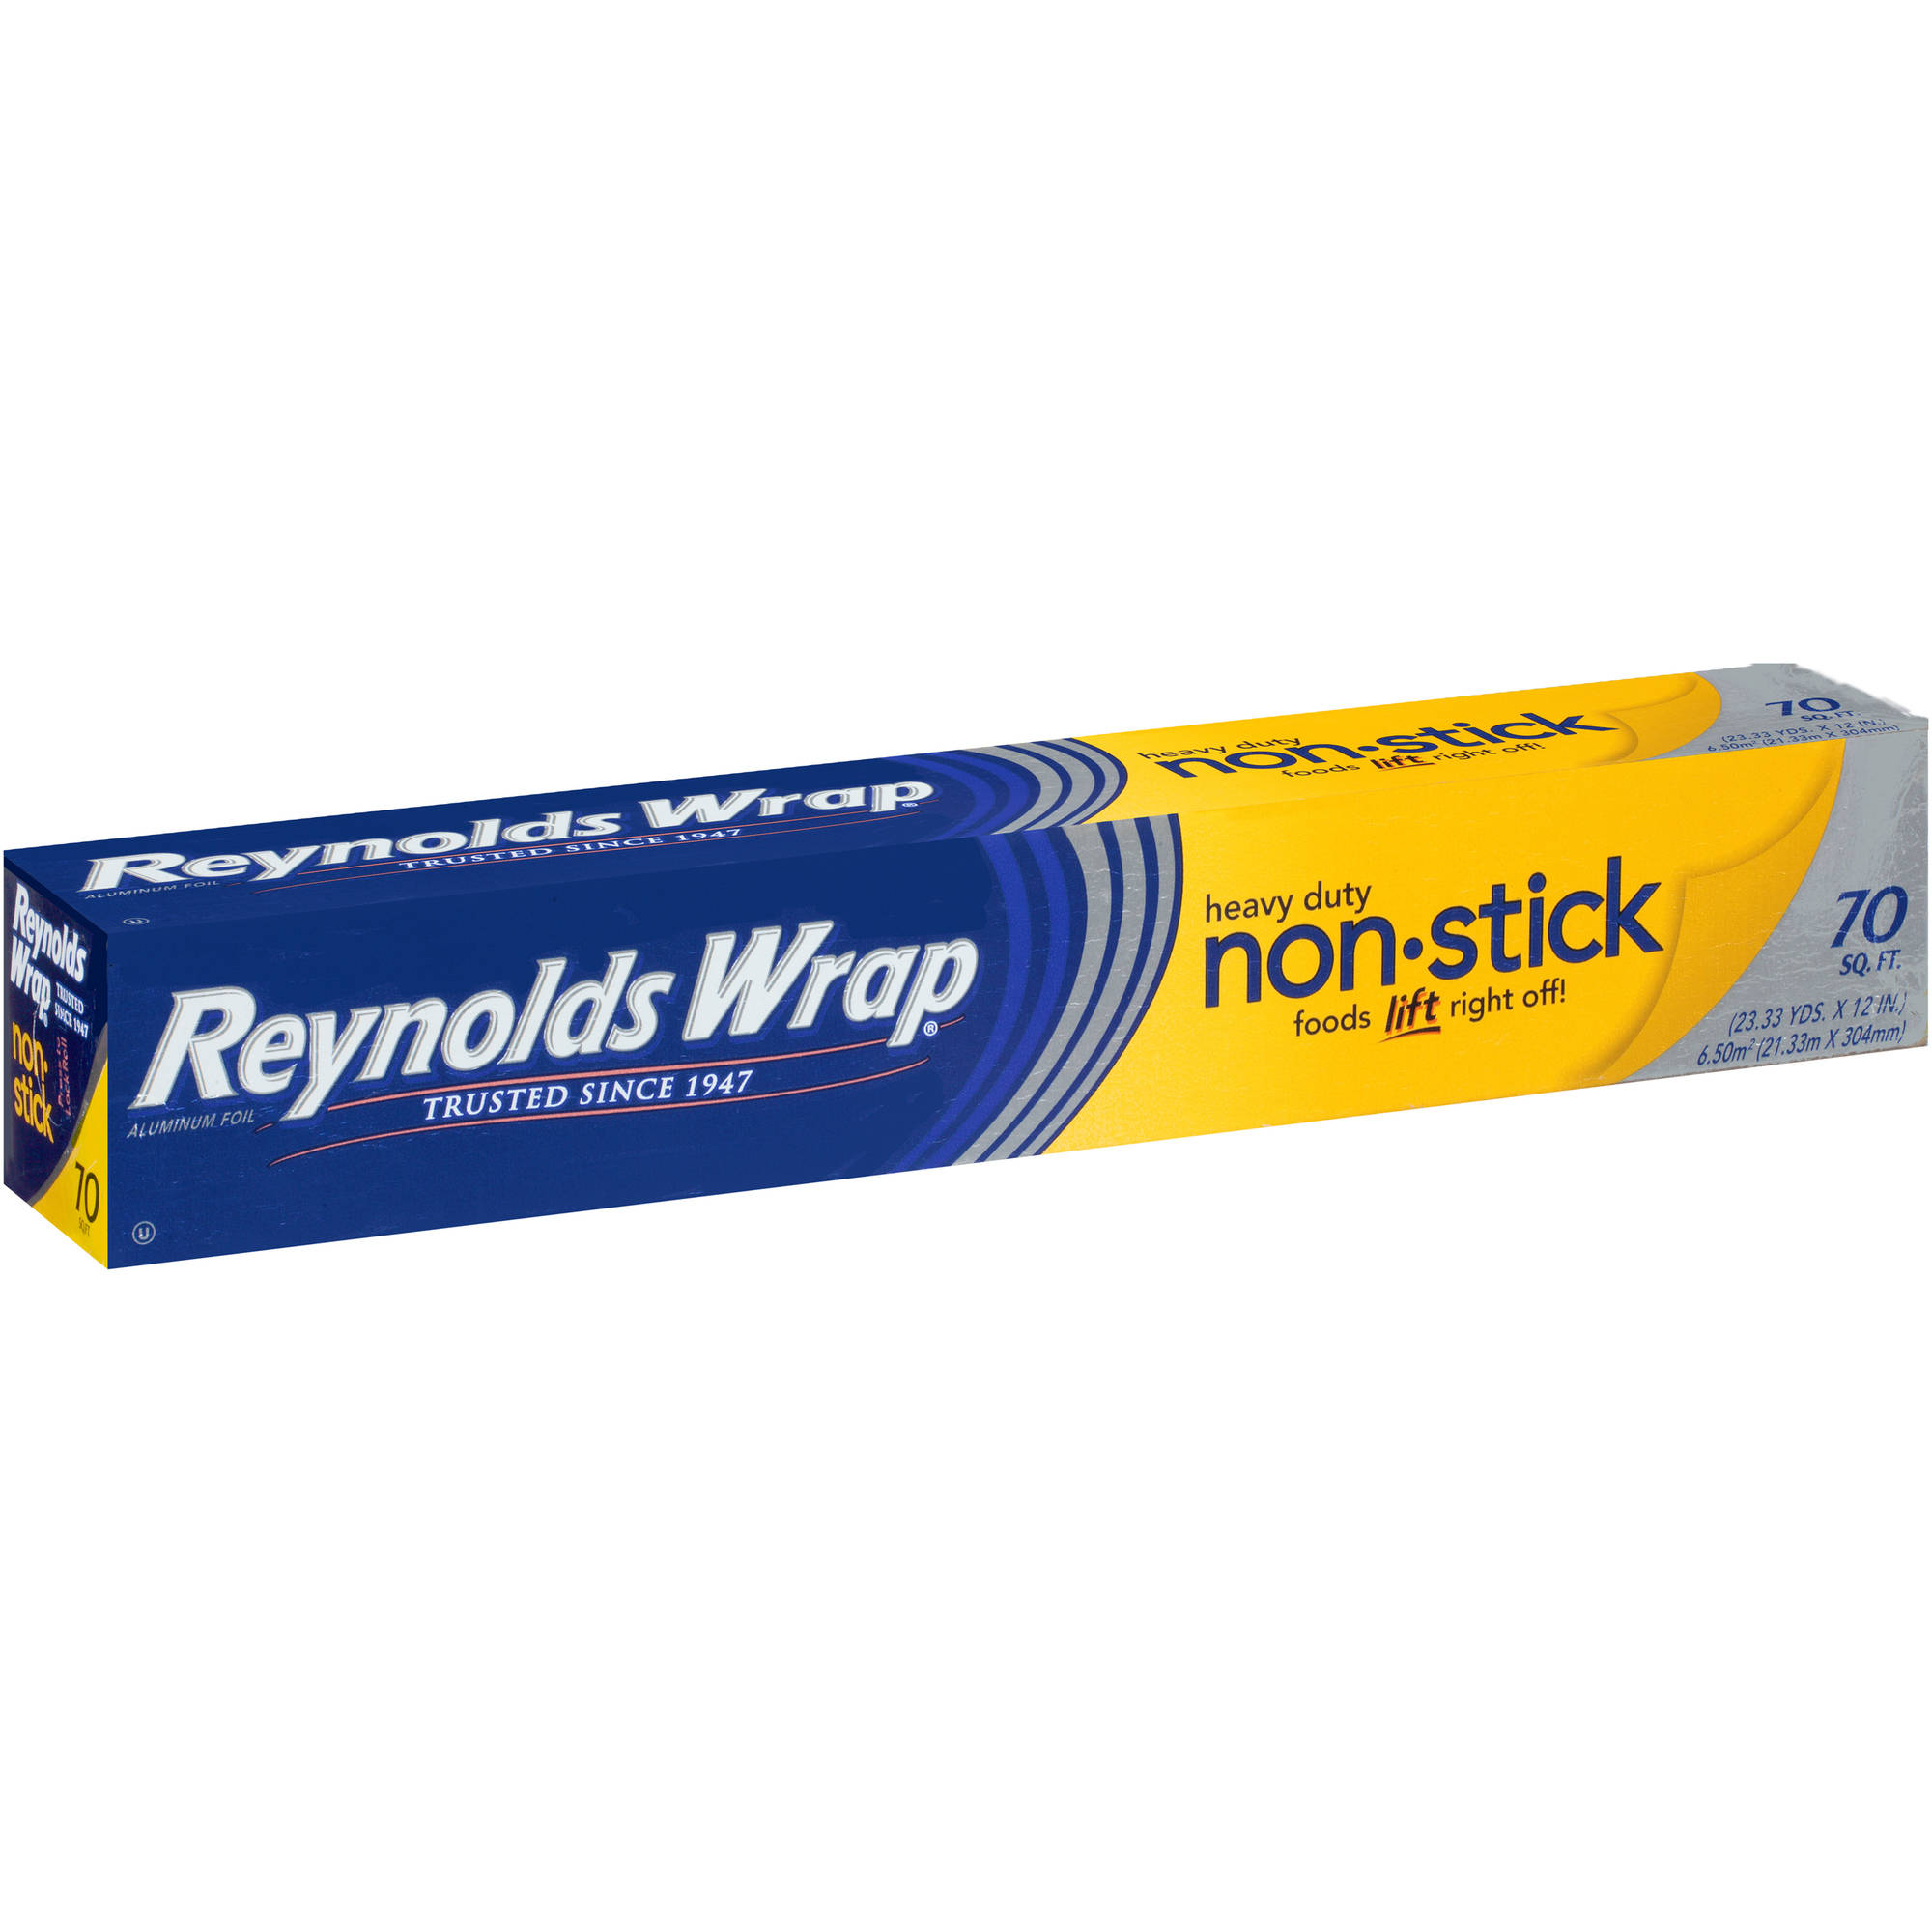 Reynolds Wrap Heavy Duty Non-Stick Aluminum Foil, 70 sq ft